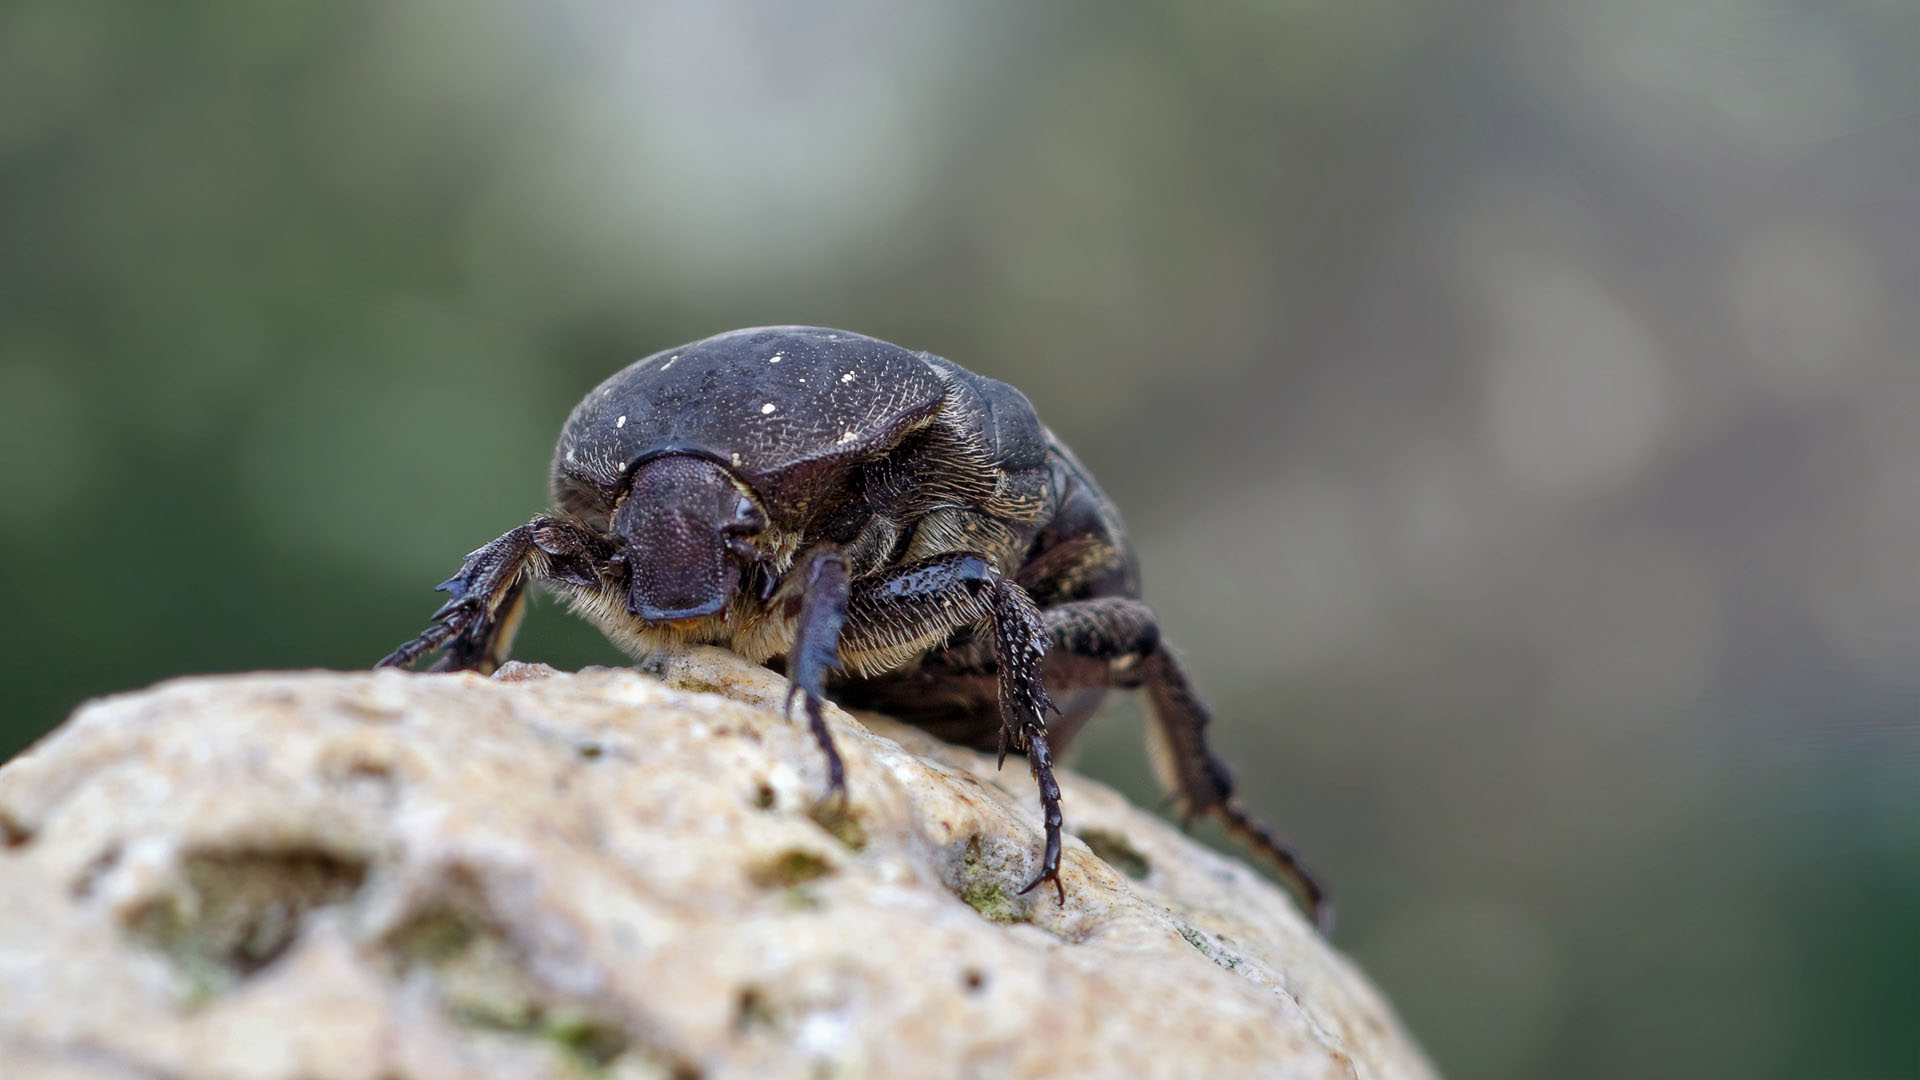 Dung beetles are creatures of the soil. There, they bury dung and recycle it by feeding on it, both as larvae and as adults. Photo: Supplied/Food For Mzansi